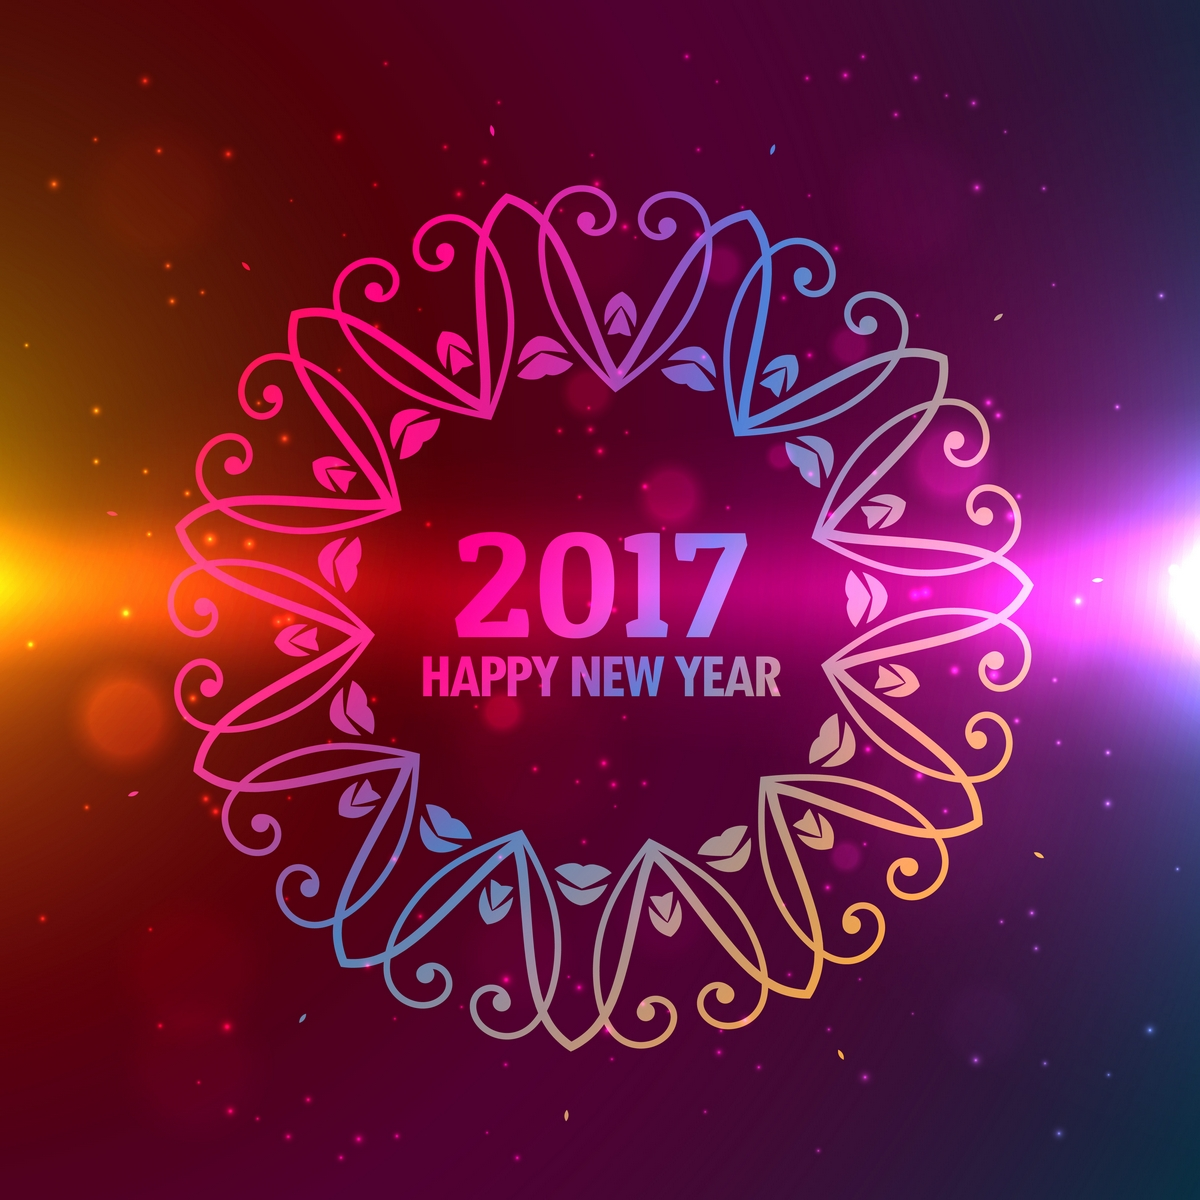 Happy New Year 2017 Messages In English